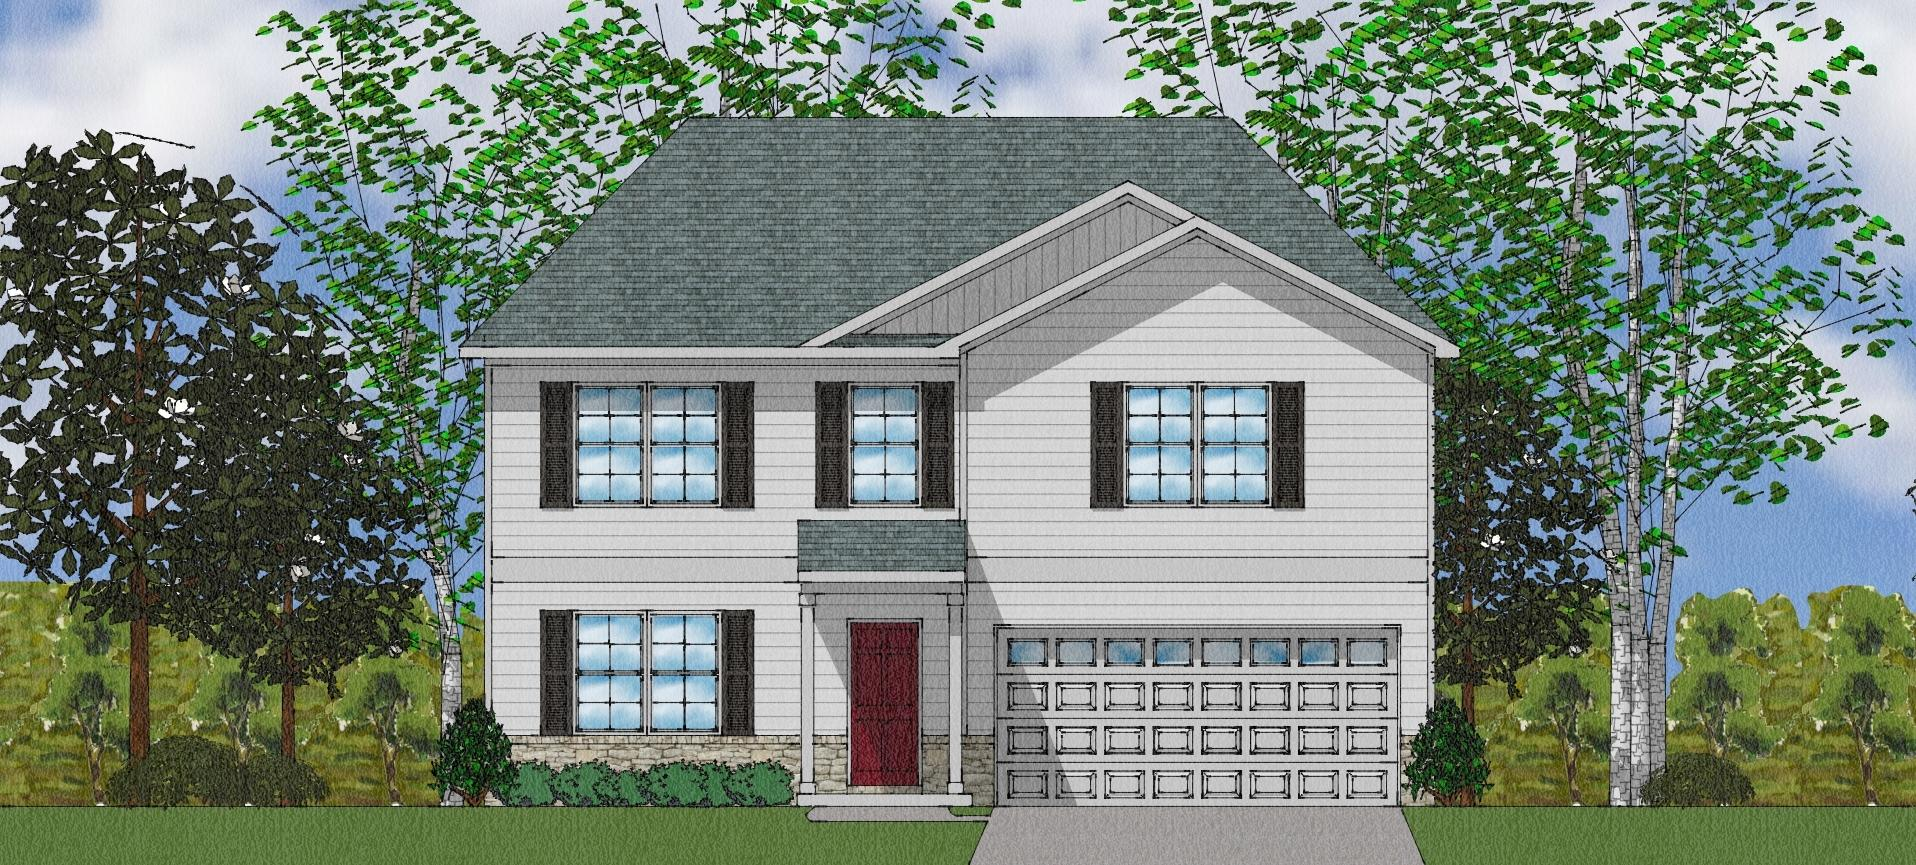 126 Clydesdale Circle Goose Creek, SC 29445